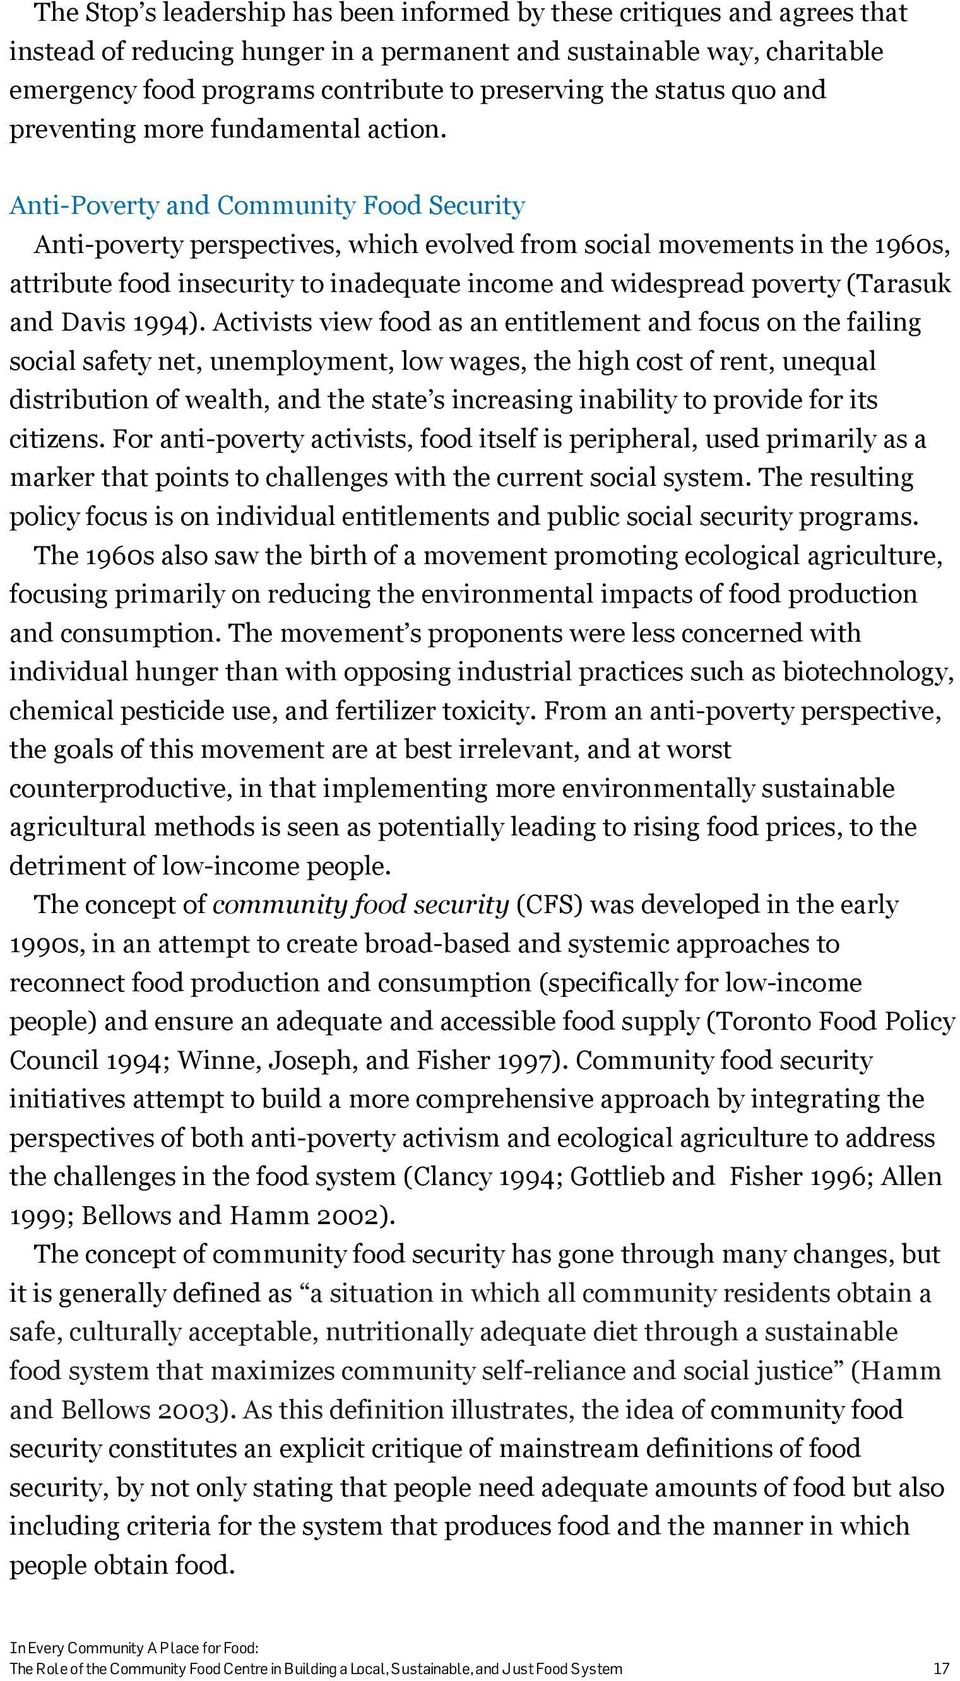 Anti-Poverty and Community Food Security Anti-poverty perspectives, which evolved from social movements in the 1960s, attribute food insecurity to inadequate income and widespread poverty (Tarasuk